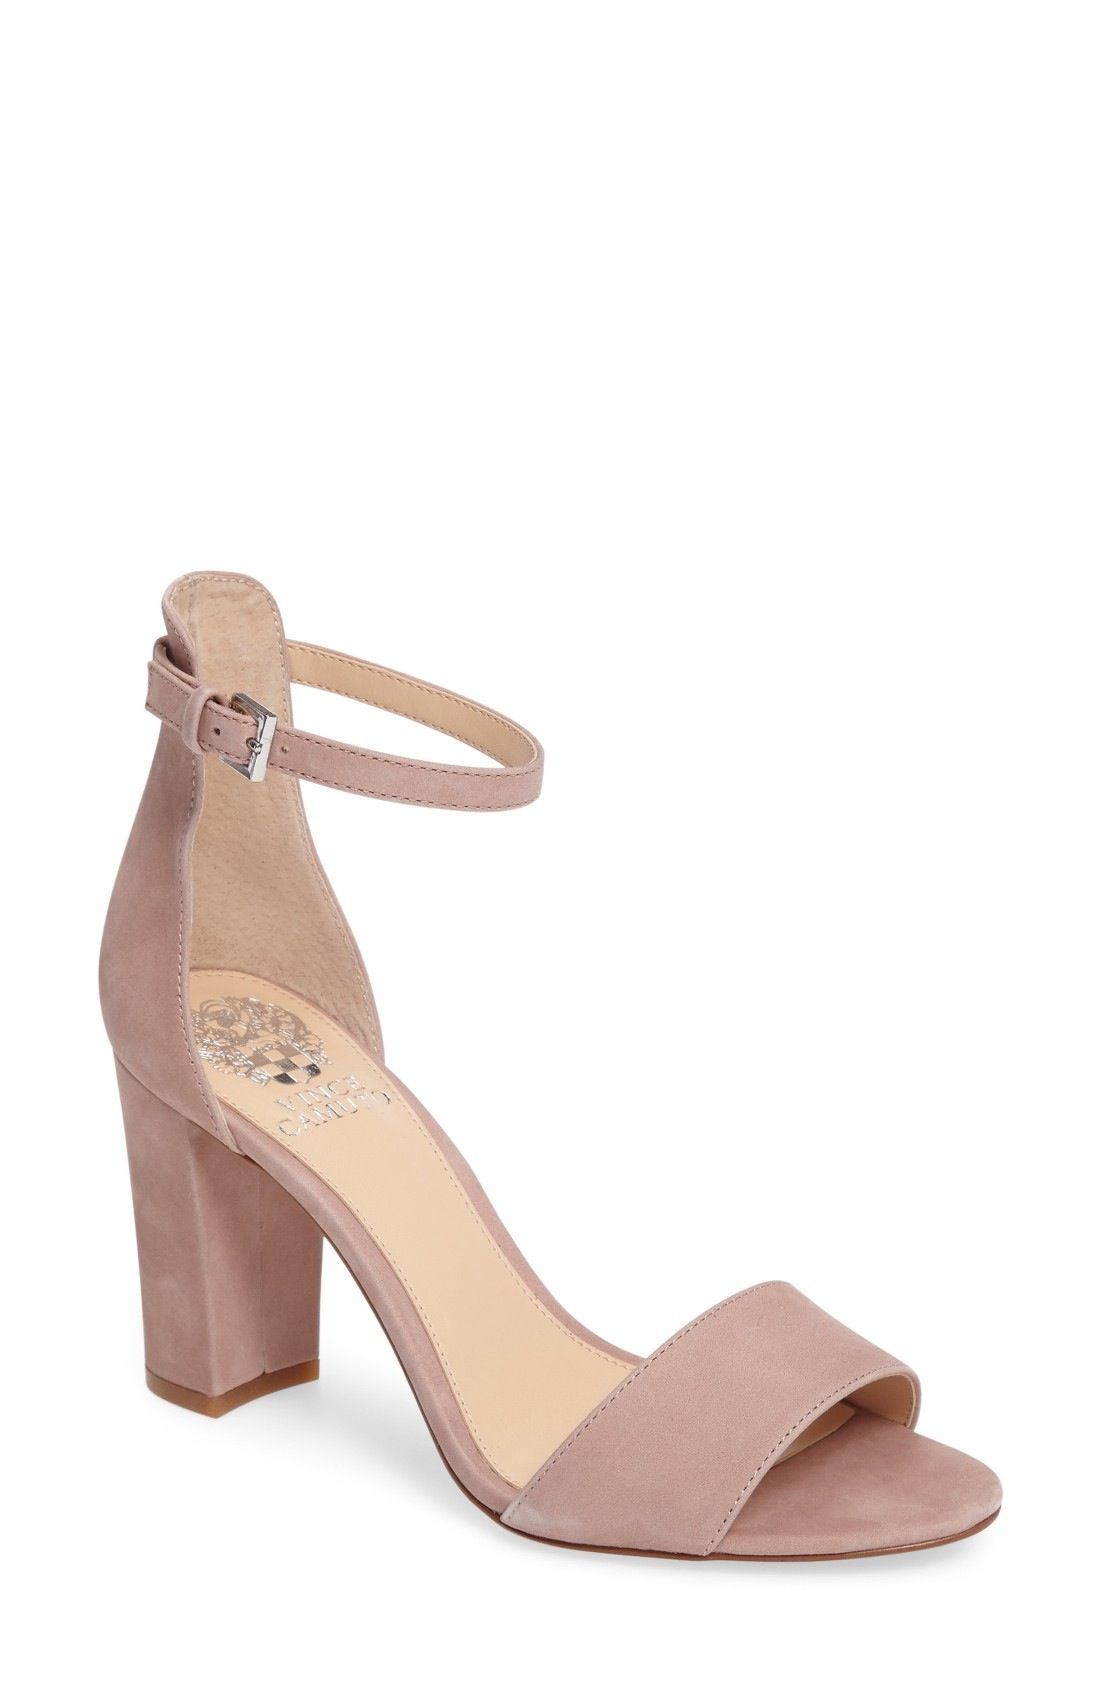 067212a79f9 Vince Camuto Corlina Ankle Strap Sandal (Women) (Nordstrom Exclusive)  available at  Nordstrom